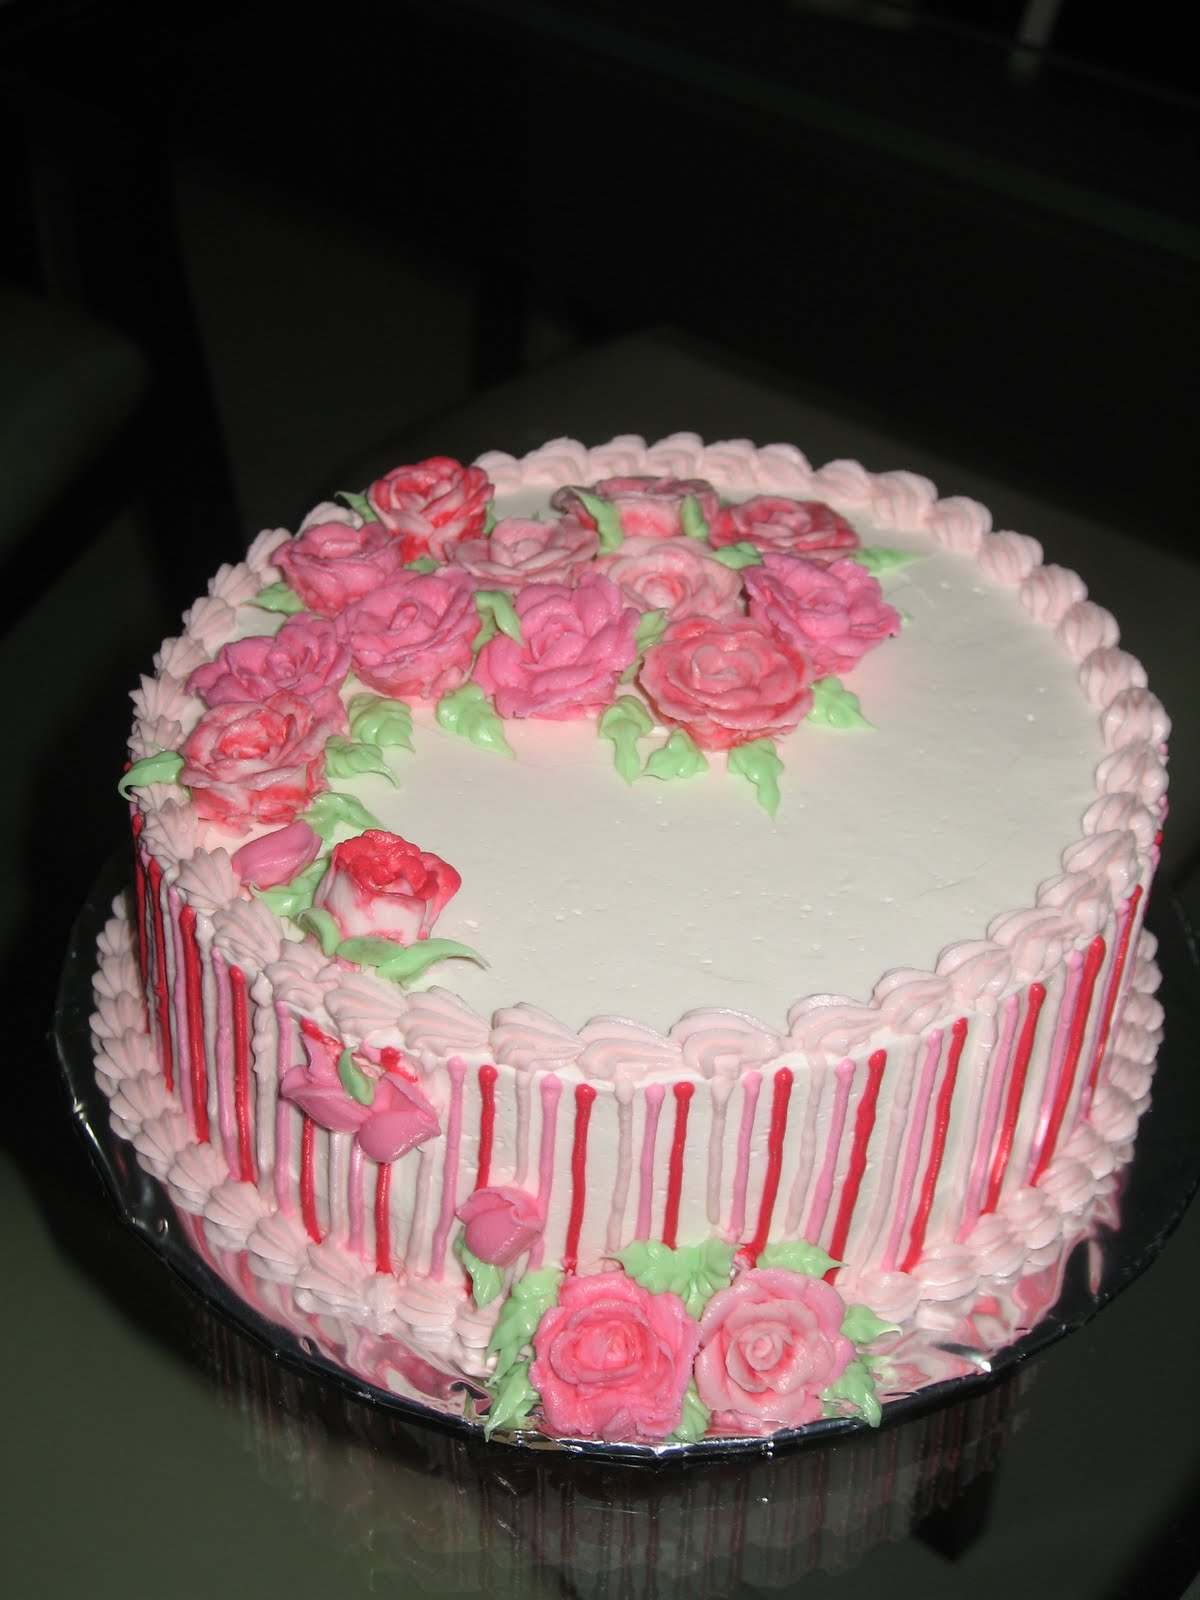 Wilton Buttercream Cake Decorating Ideas : Fun In Cake Decorating: Wilton Cake Decorating Course 1